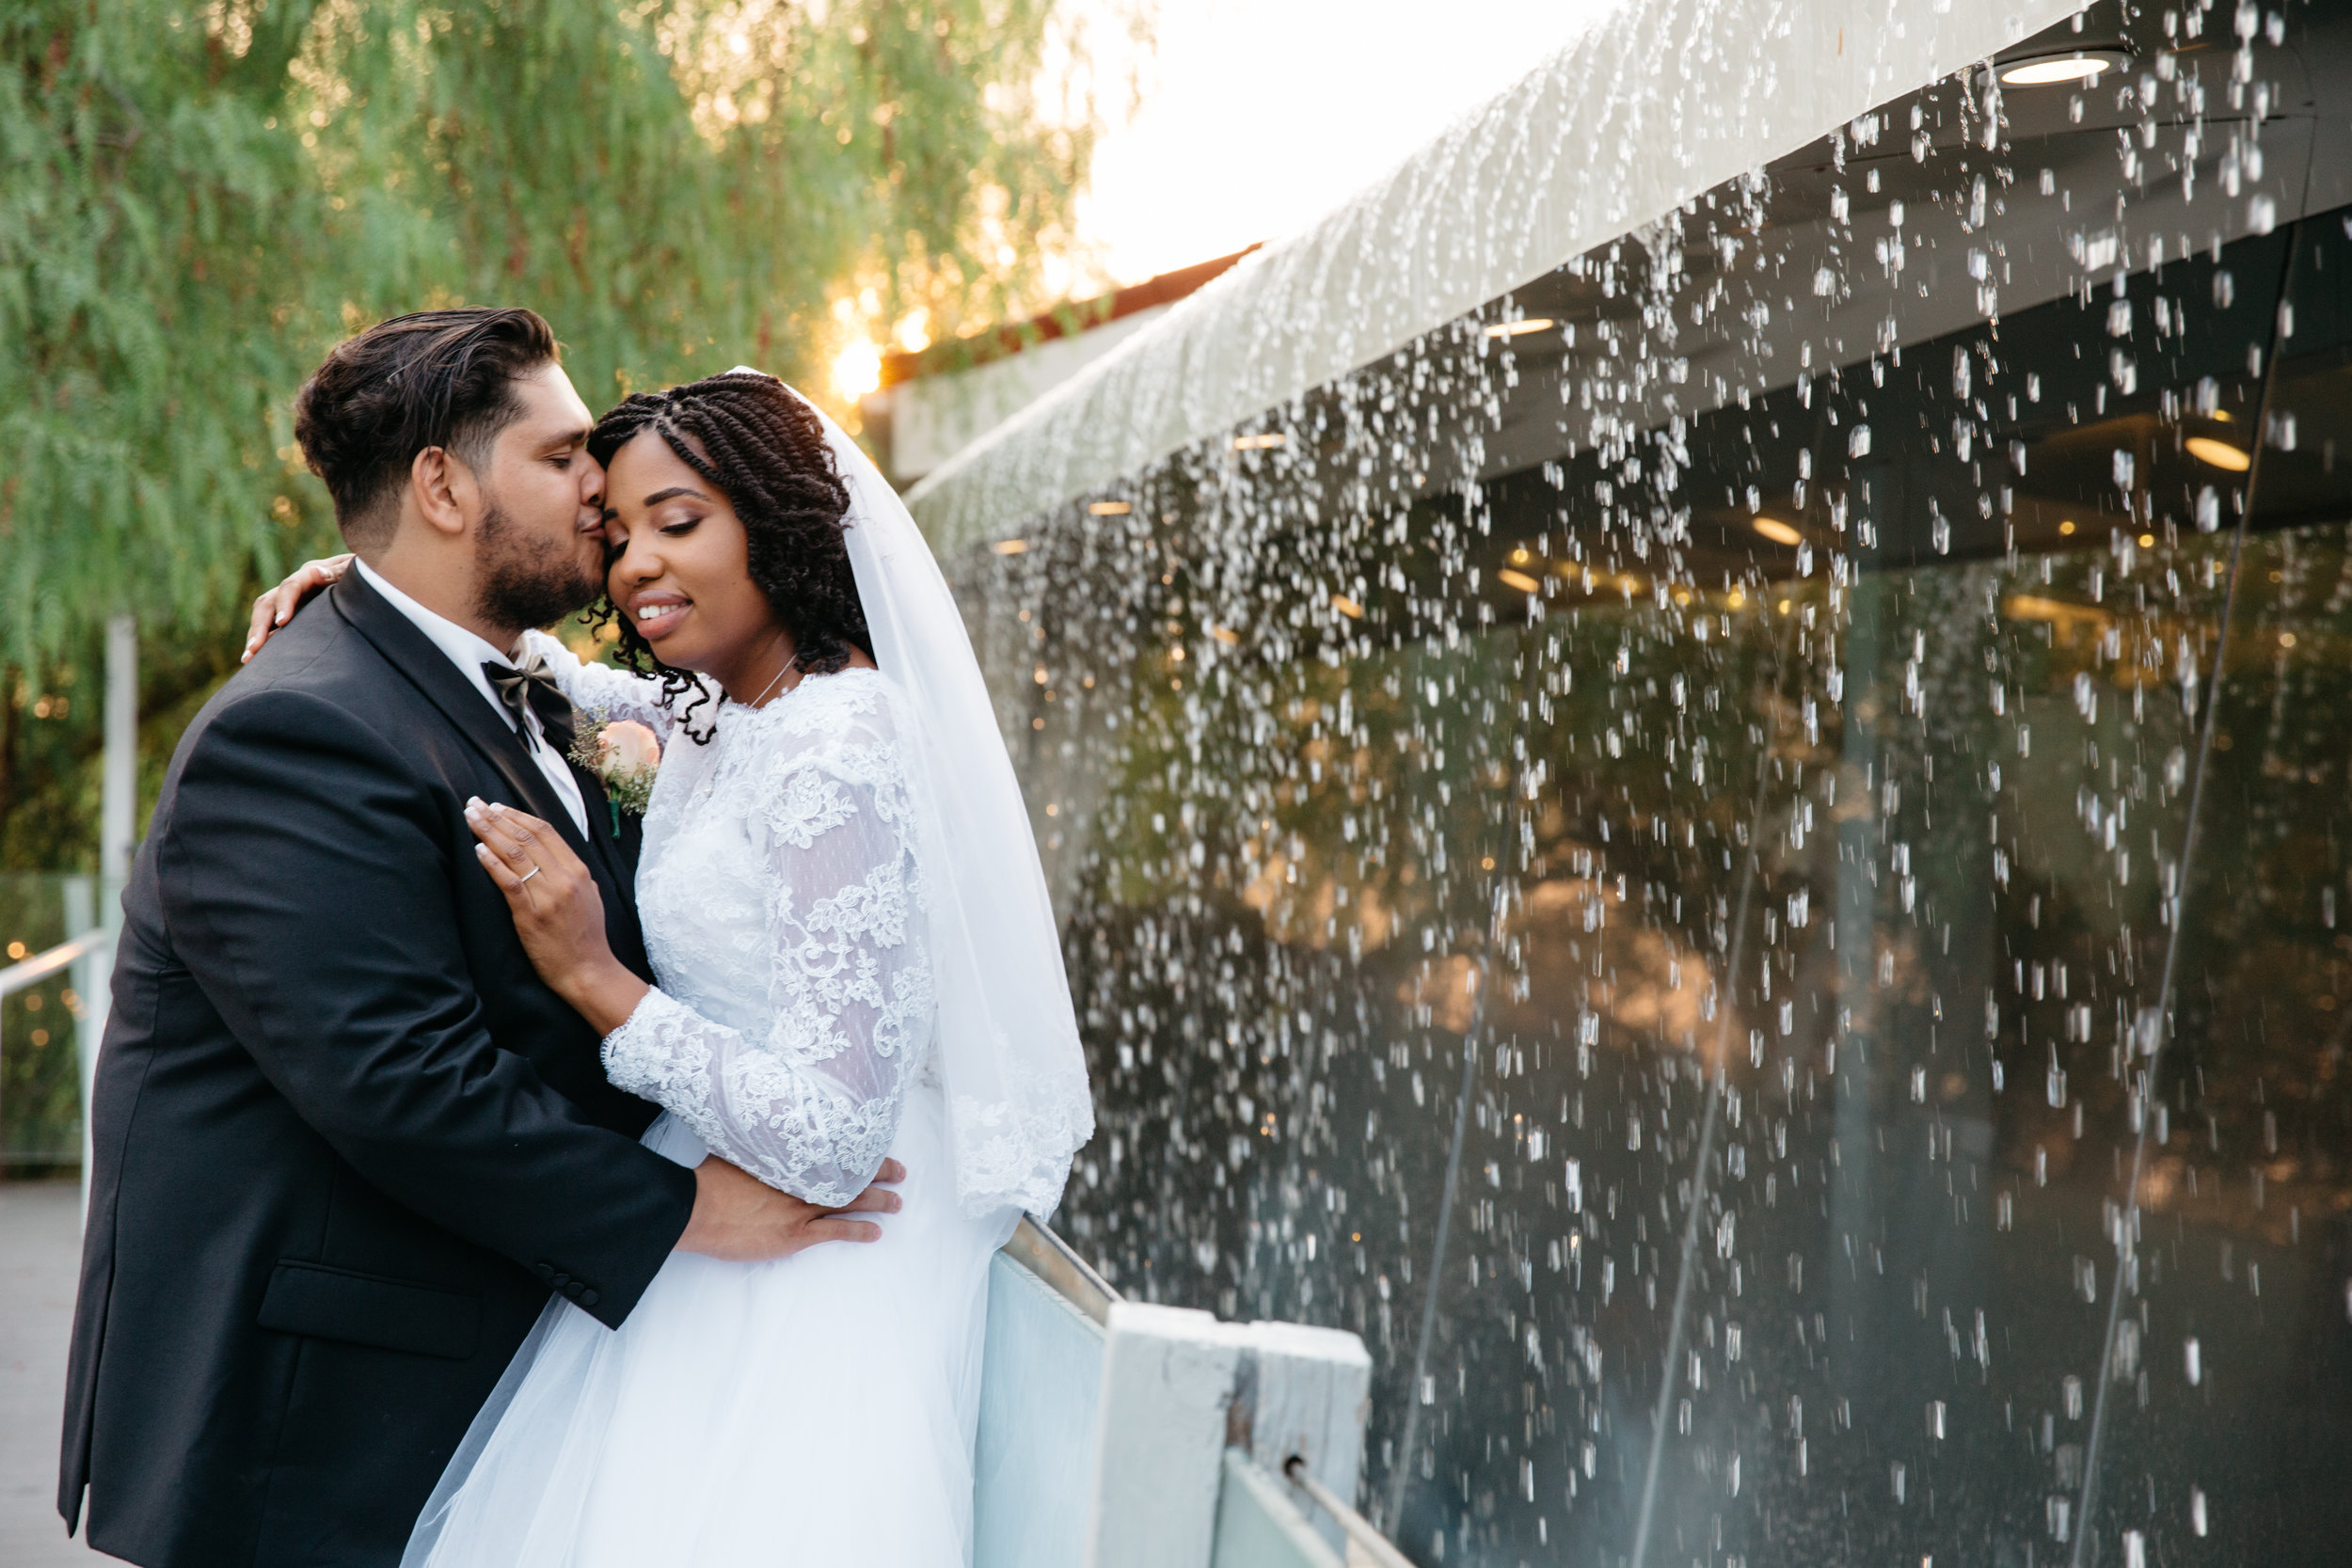 The Vineyard Wedding Jenna Bells and Laces Photography-58.jpg